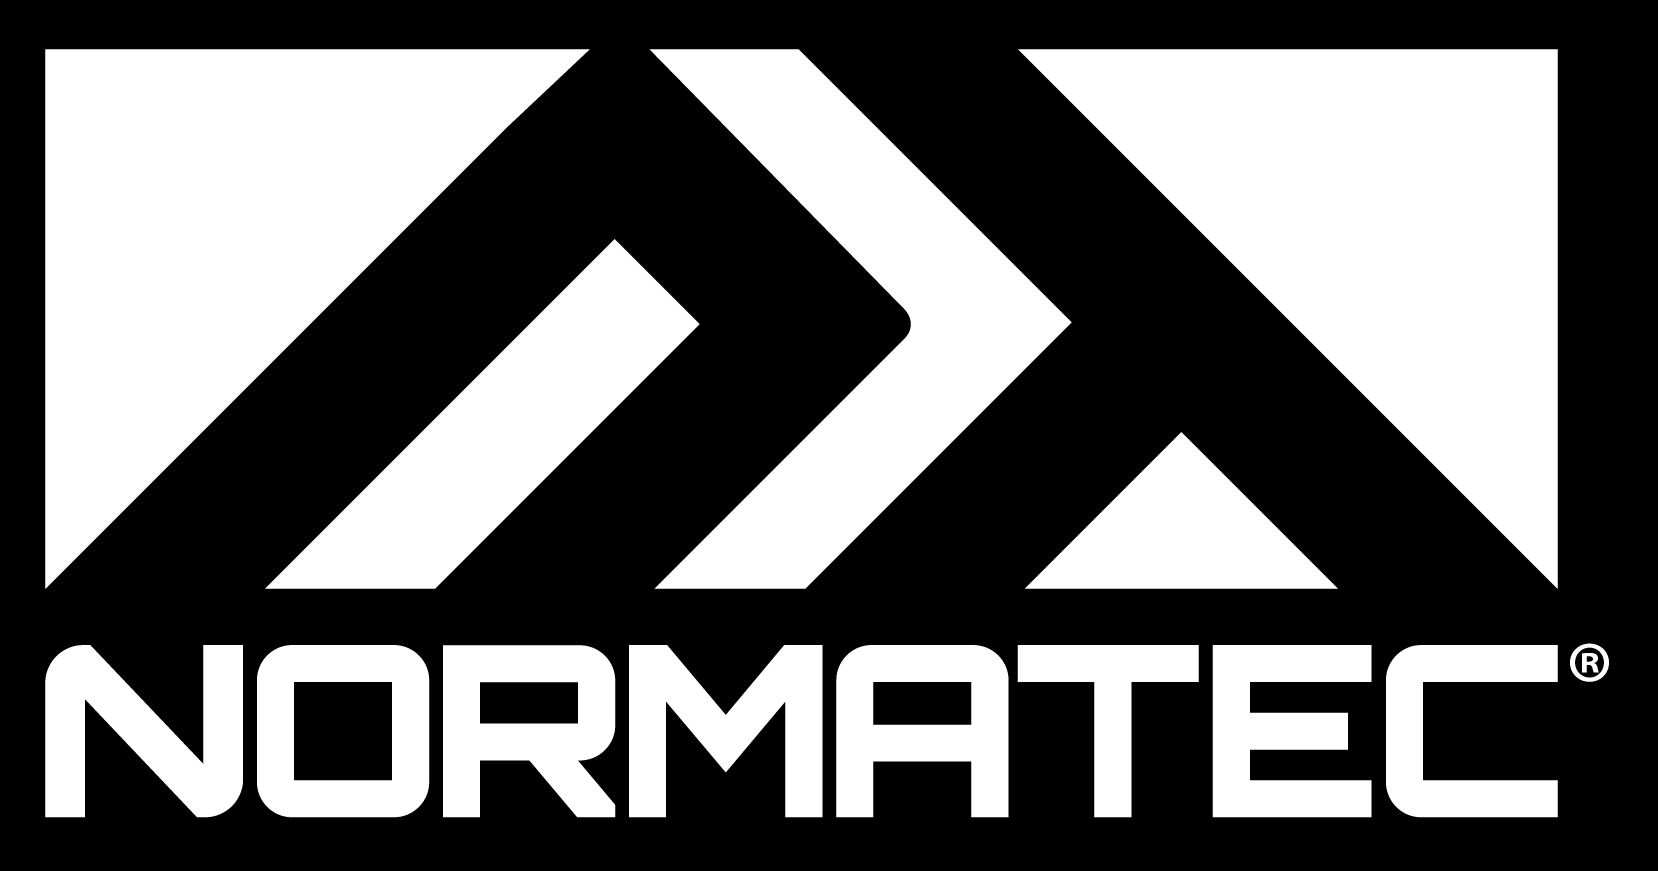 normatec_stacked_logo_white_on_black.jpg